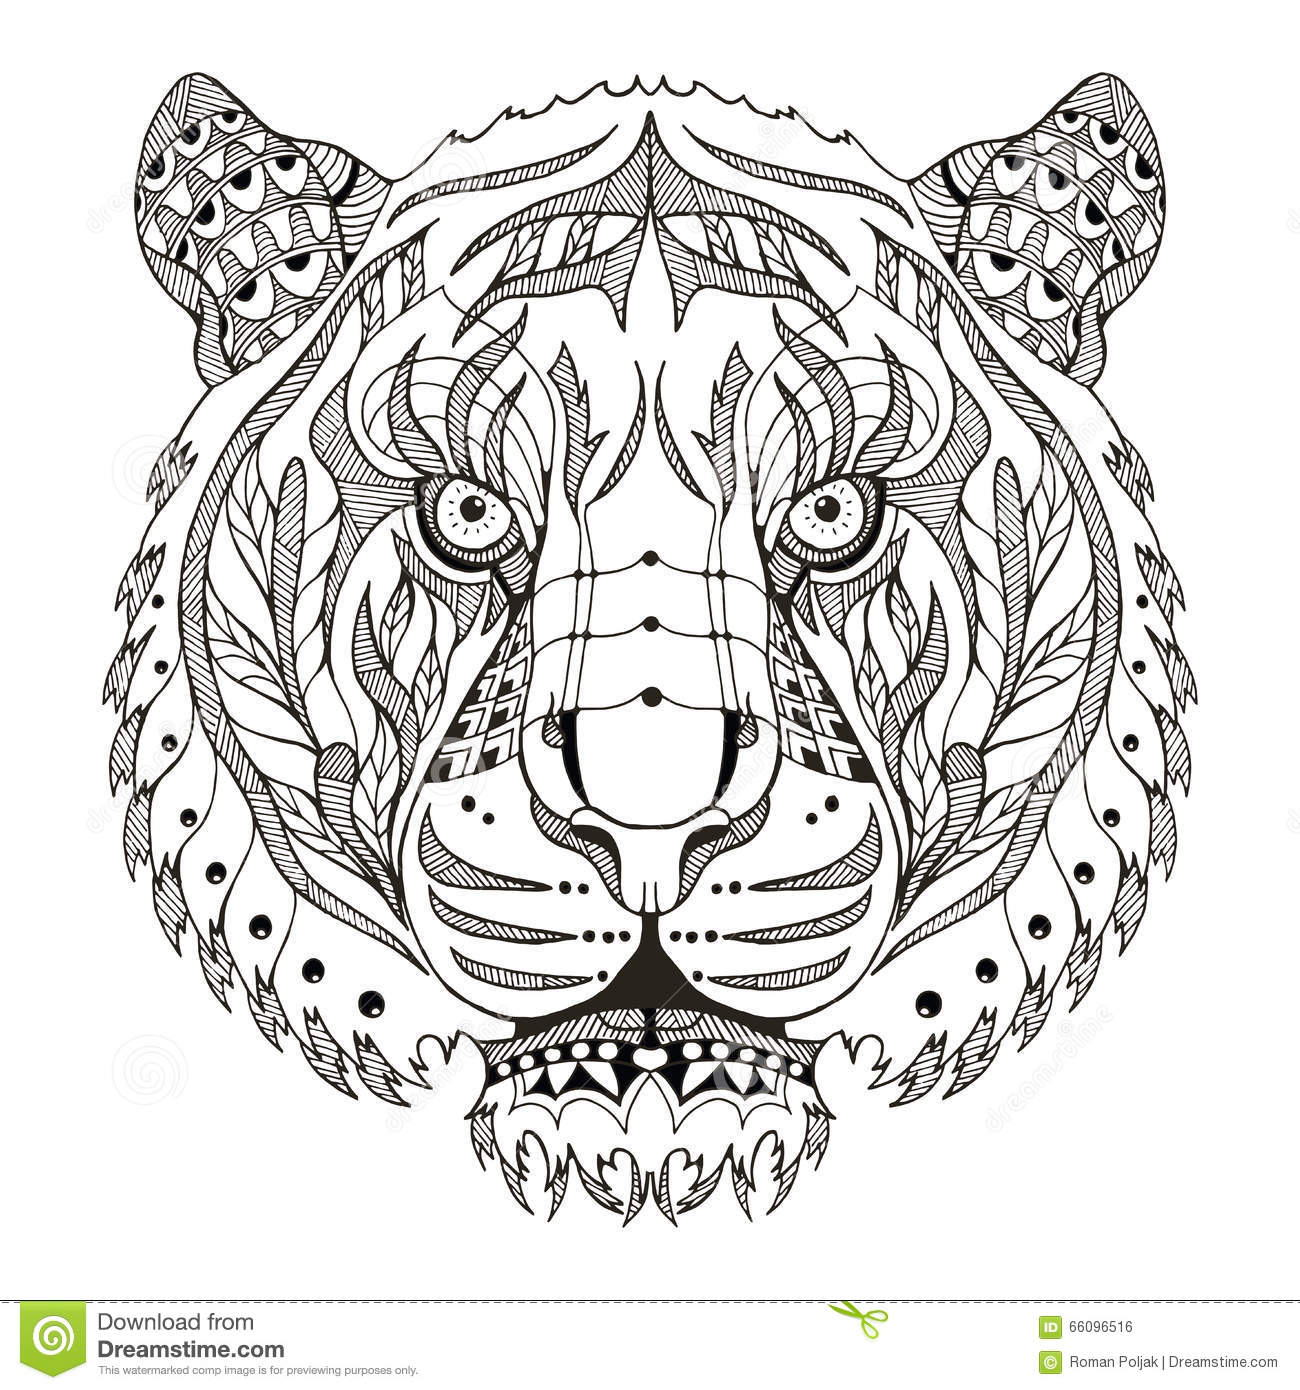 Cell Tower further Phone Coloring Pages also Phone Coloring Pages in addition 403494447841301202 as well Behavior management. on big phones